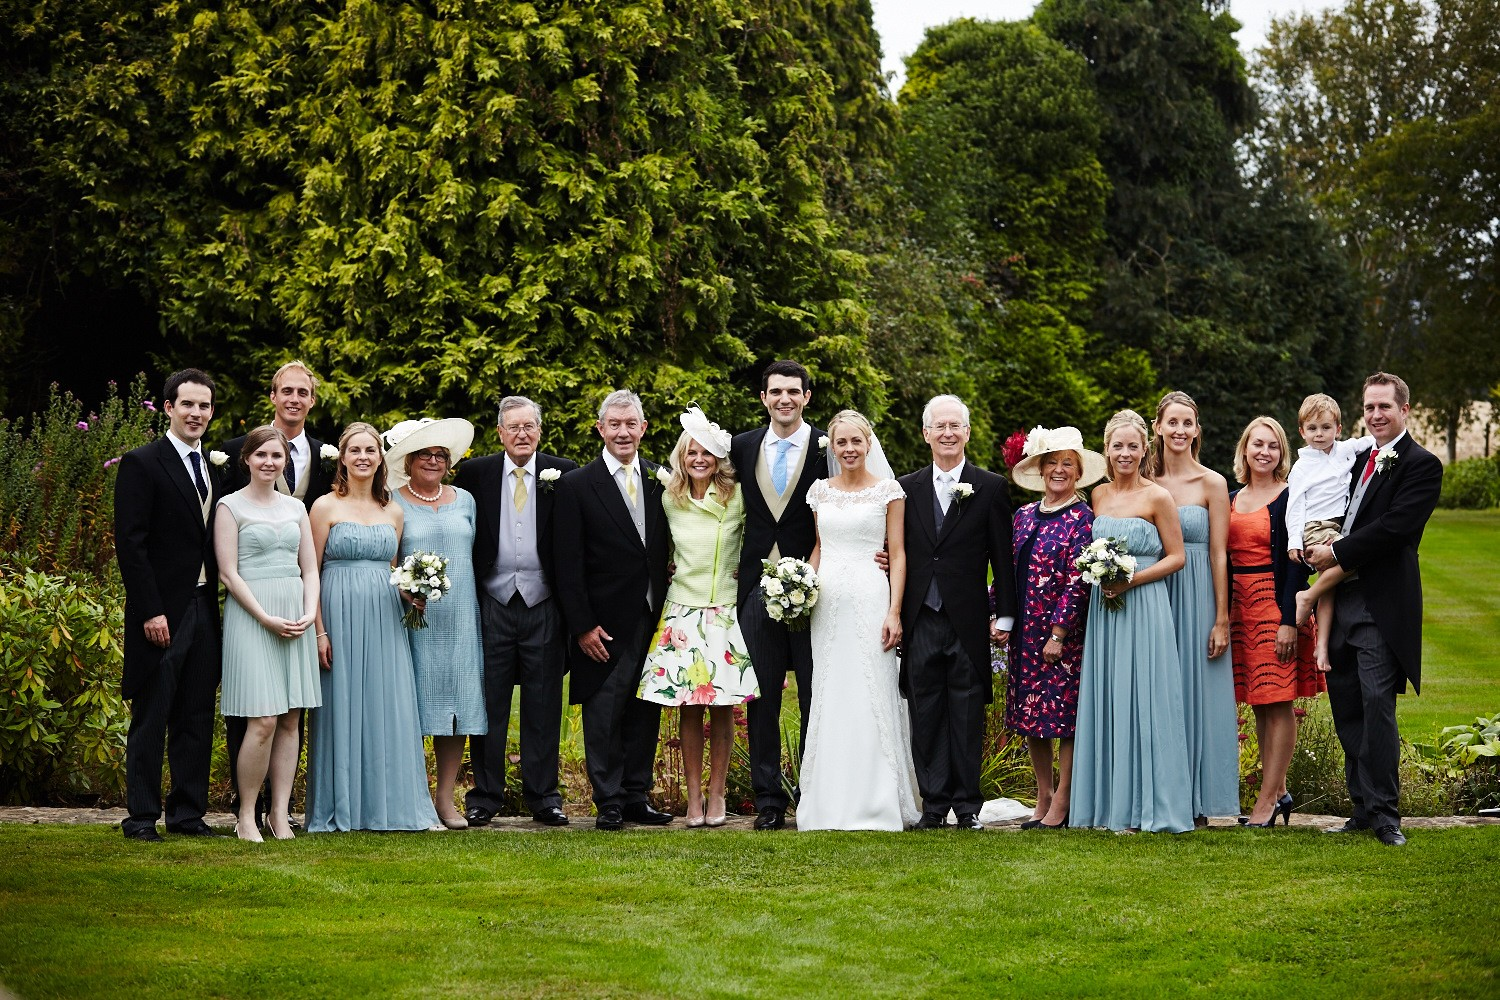 10 Tips To Help Your Group Wedding Photos Run Smoothly